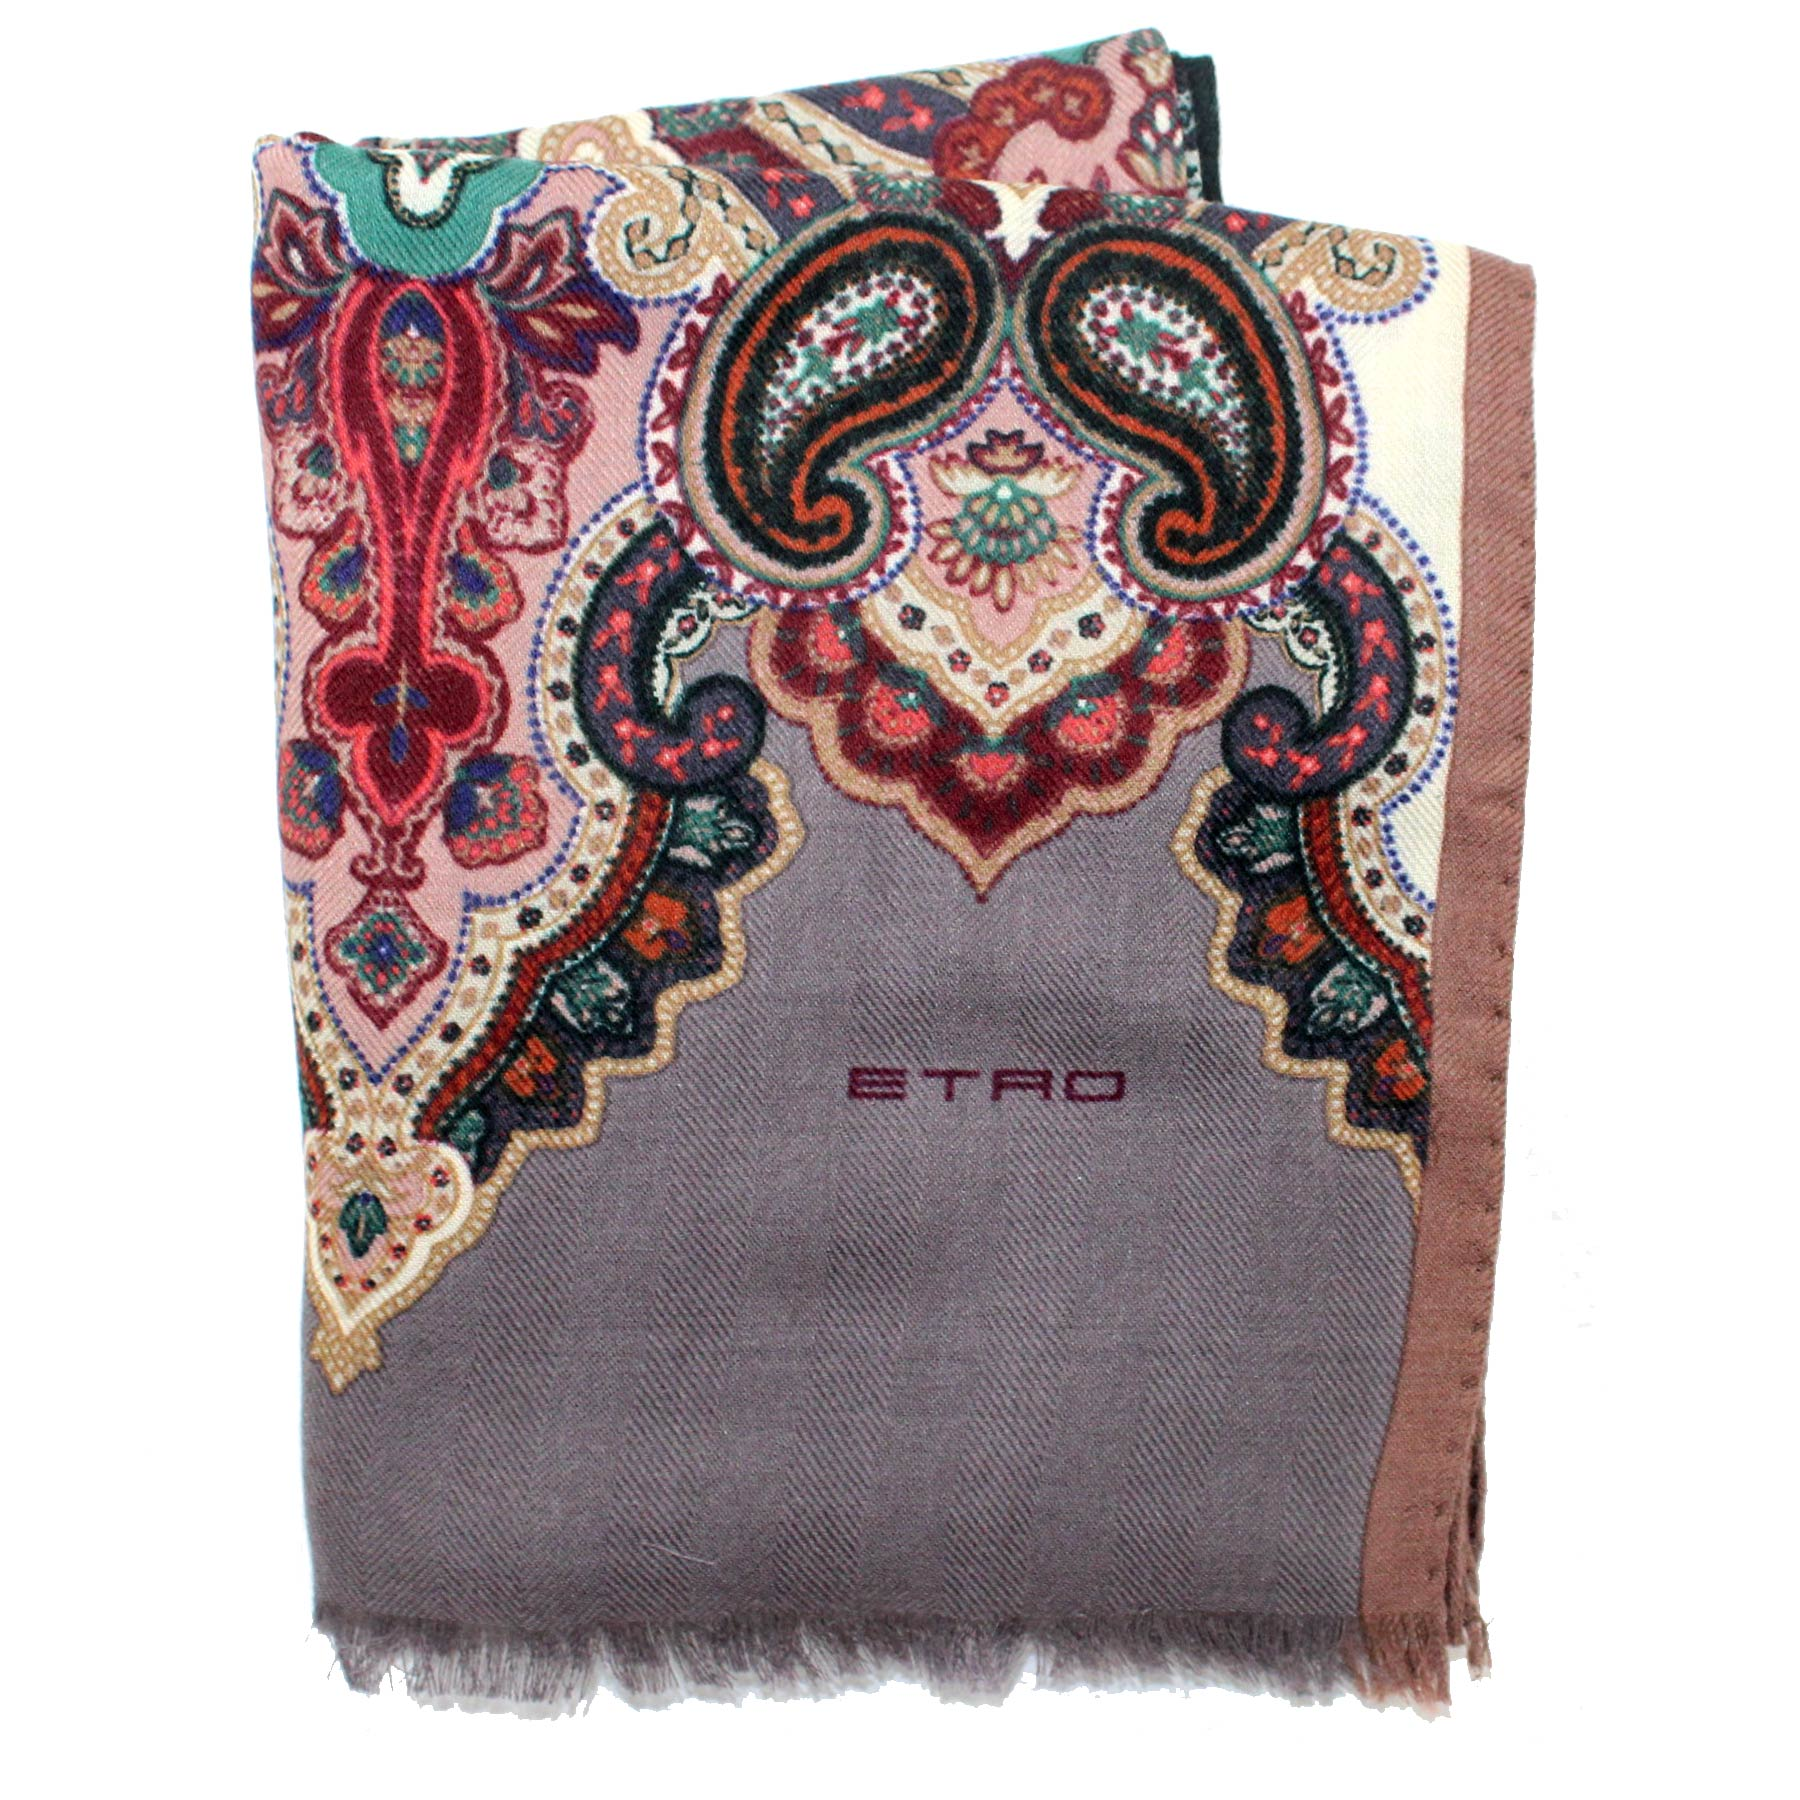 Etro Scarf Gray Ornamental Design - Cashmere Silk Shawl